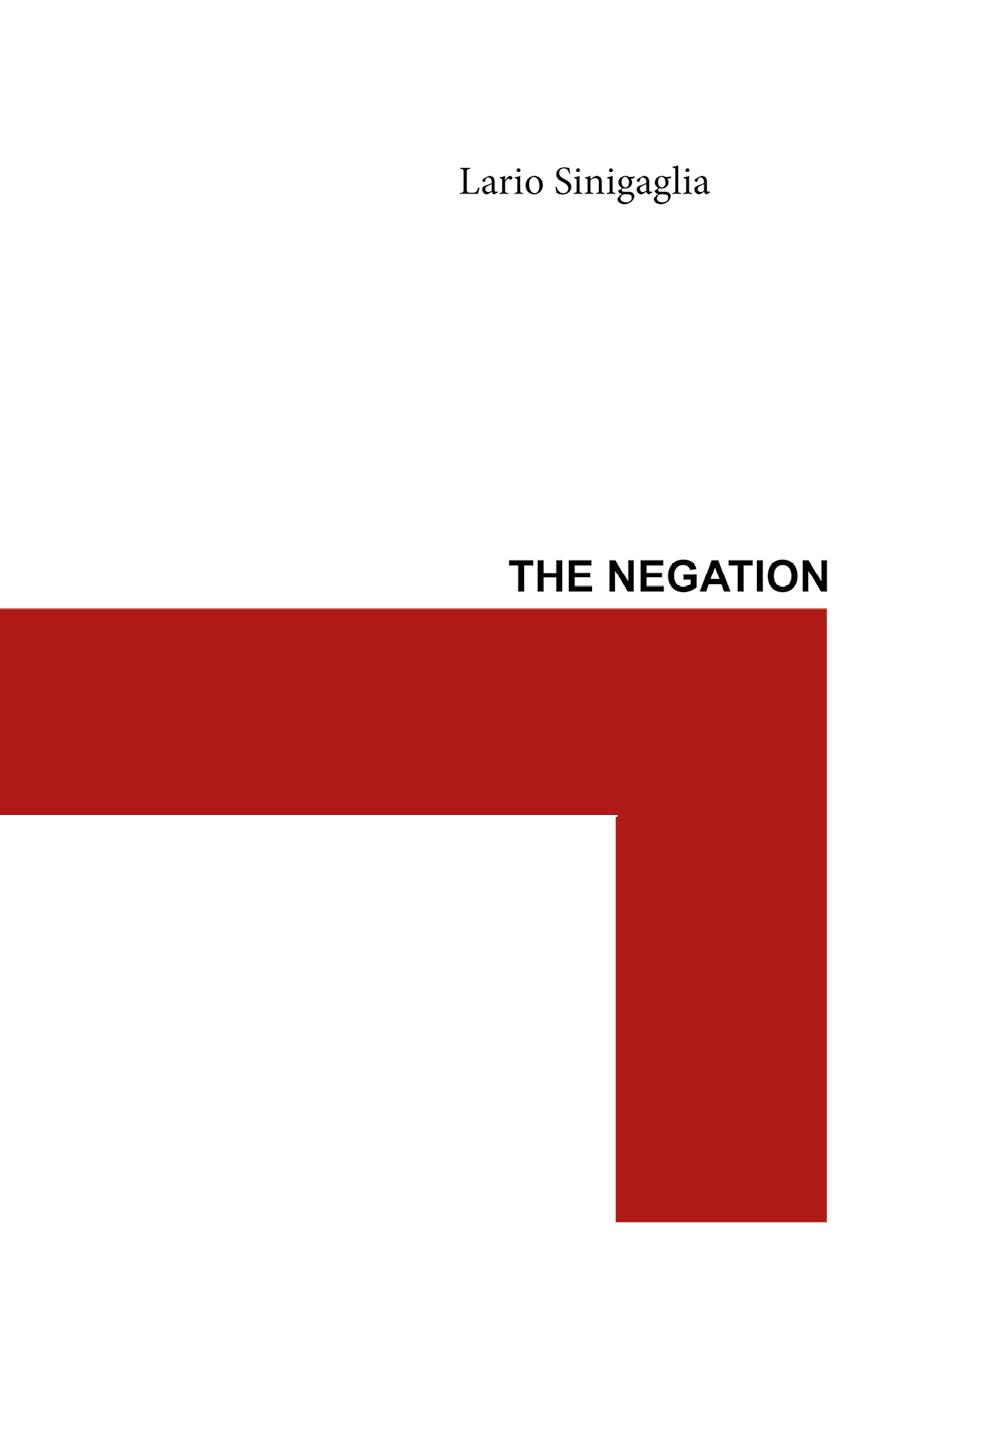 THE NEGATION